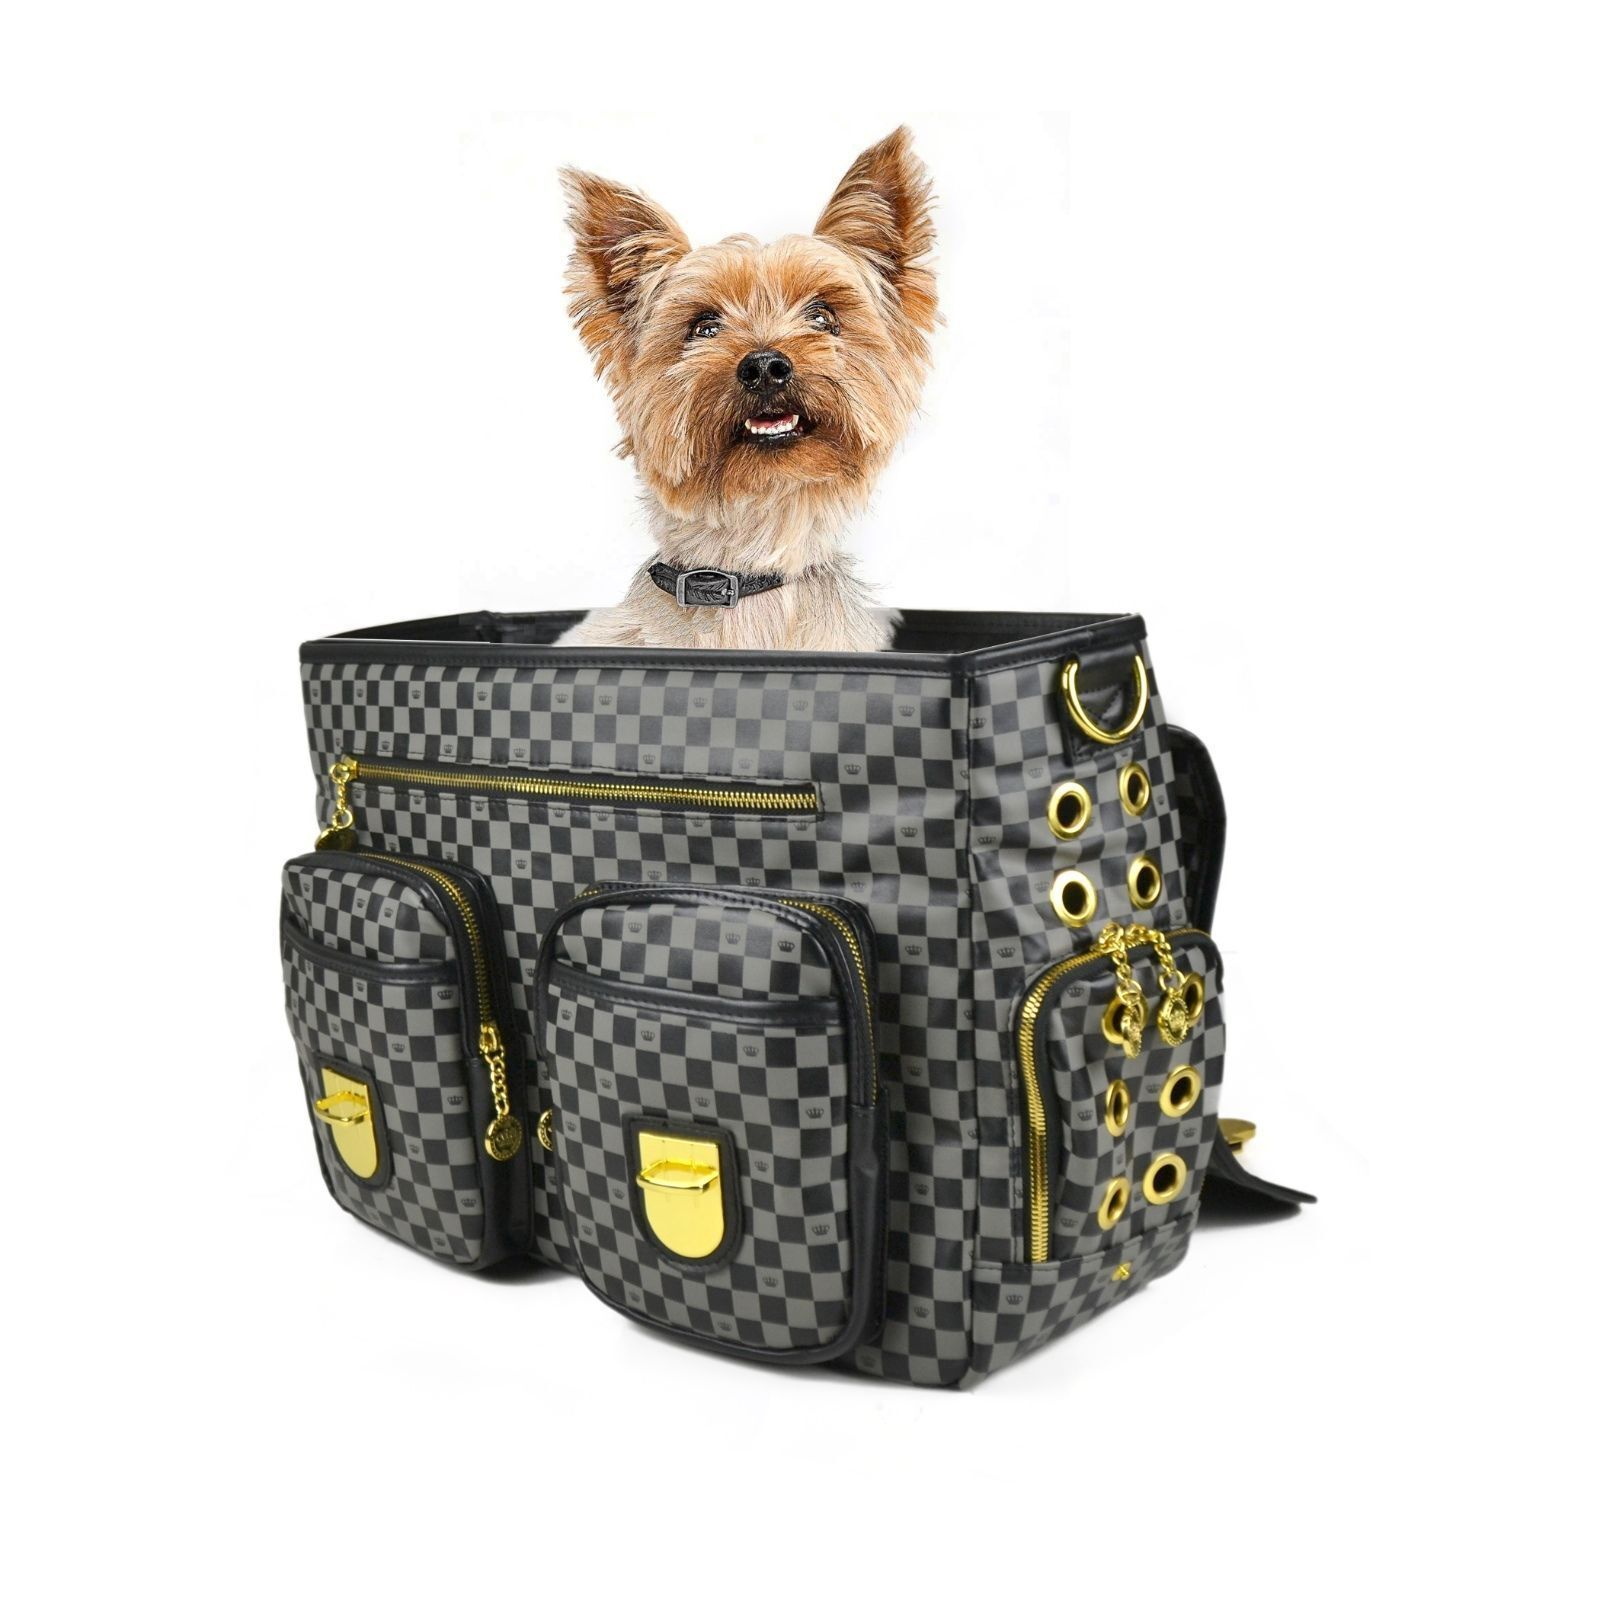 Pet Carrier On Sale Dogs Of Glamour Luxe Check Messenger Gold And Black Dog Carrier Tote Sale